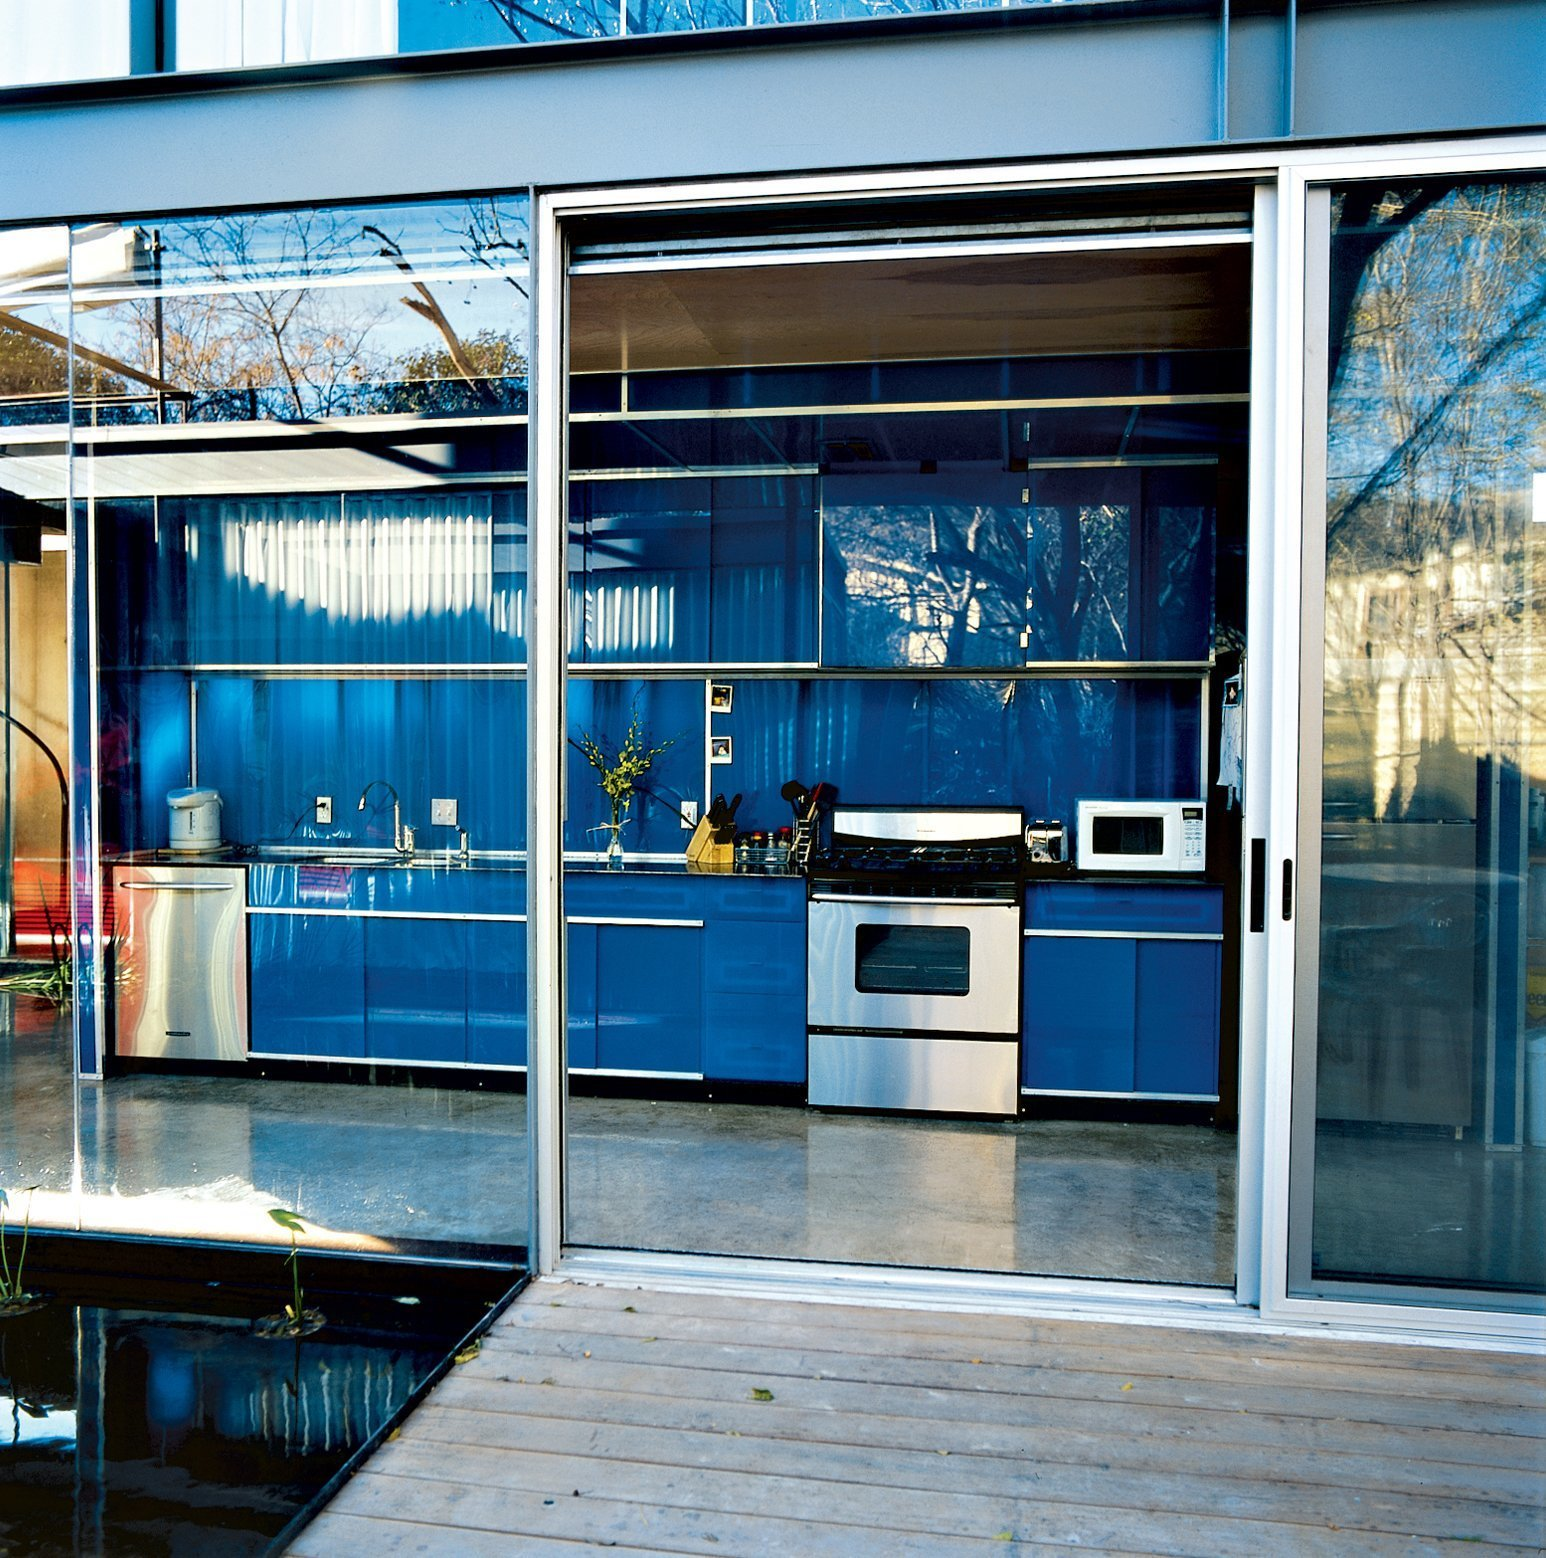 Kitchen, Range, Colorful, Microwave, Dishwasher, Wall Oven, and Concrete The inaugural project of Bercy Chen Studio, this home in Austin, Texas has a cobalt blue galley-style kitchen that is free from visible knobs and hinges.  Best Kitchen Concrete Colorful Wall Oven Photos from 12 Electrifying Kitchens That Are Unapologetic About Color